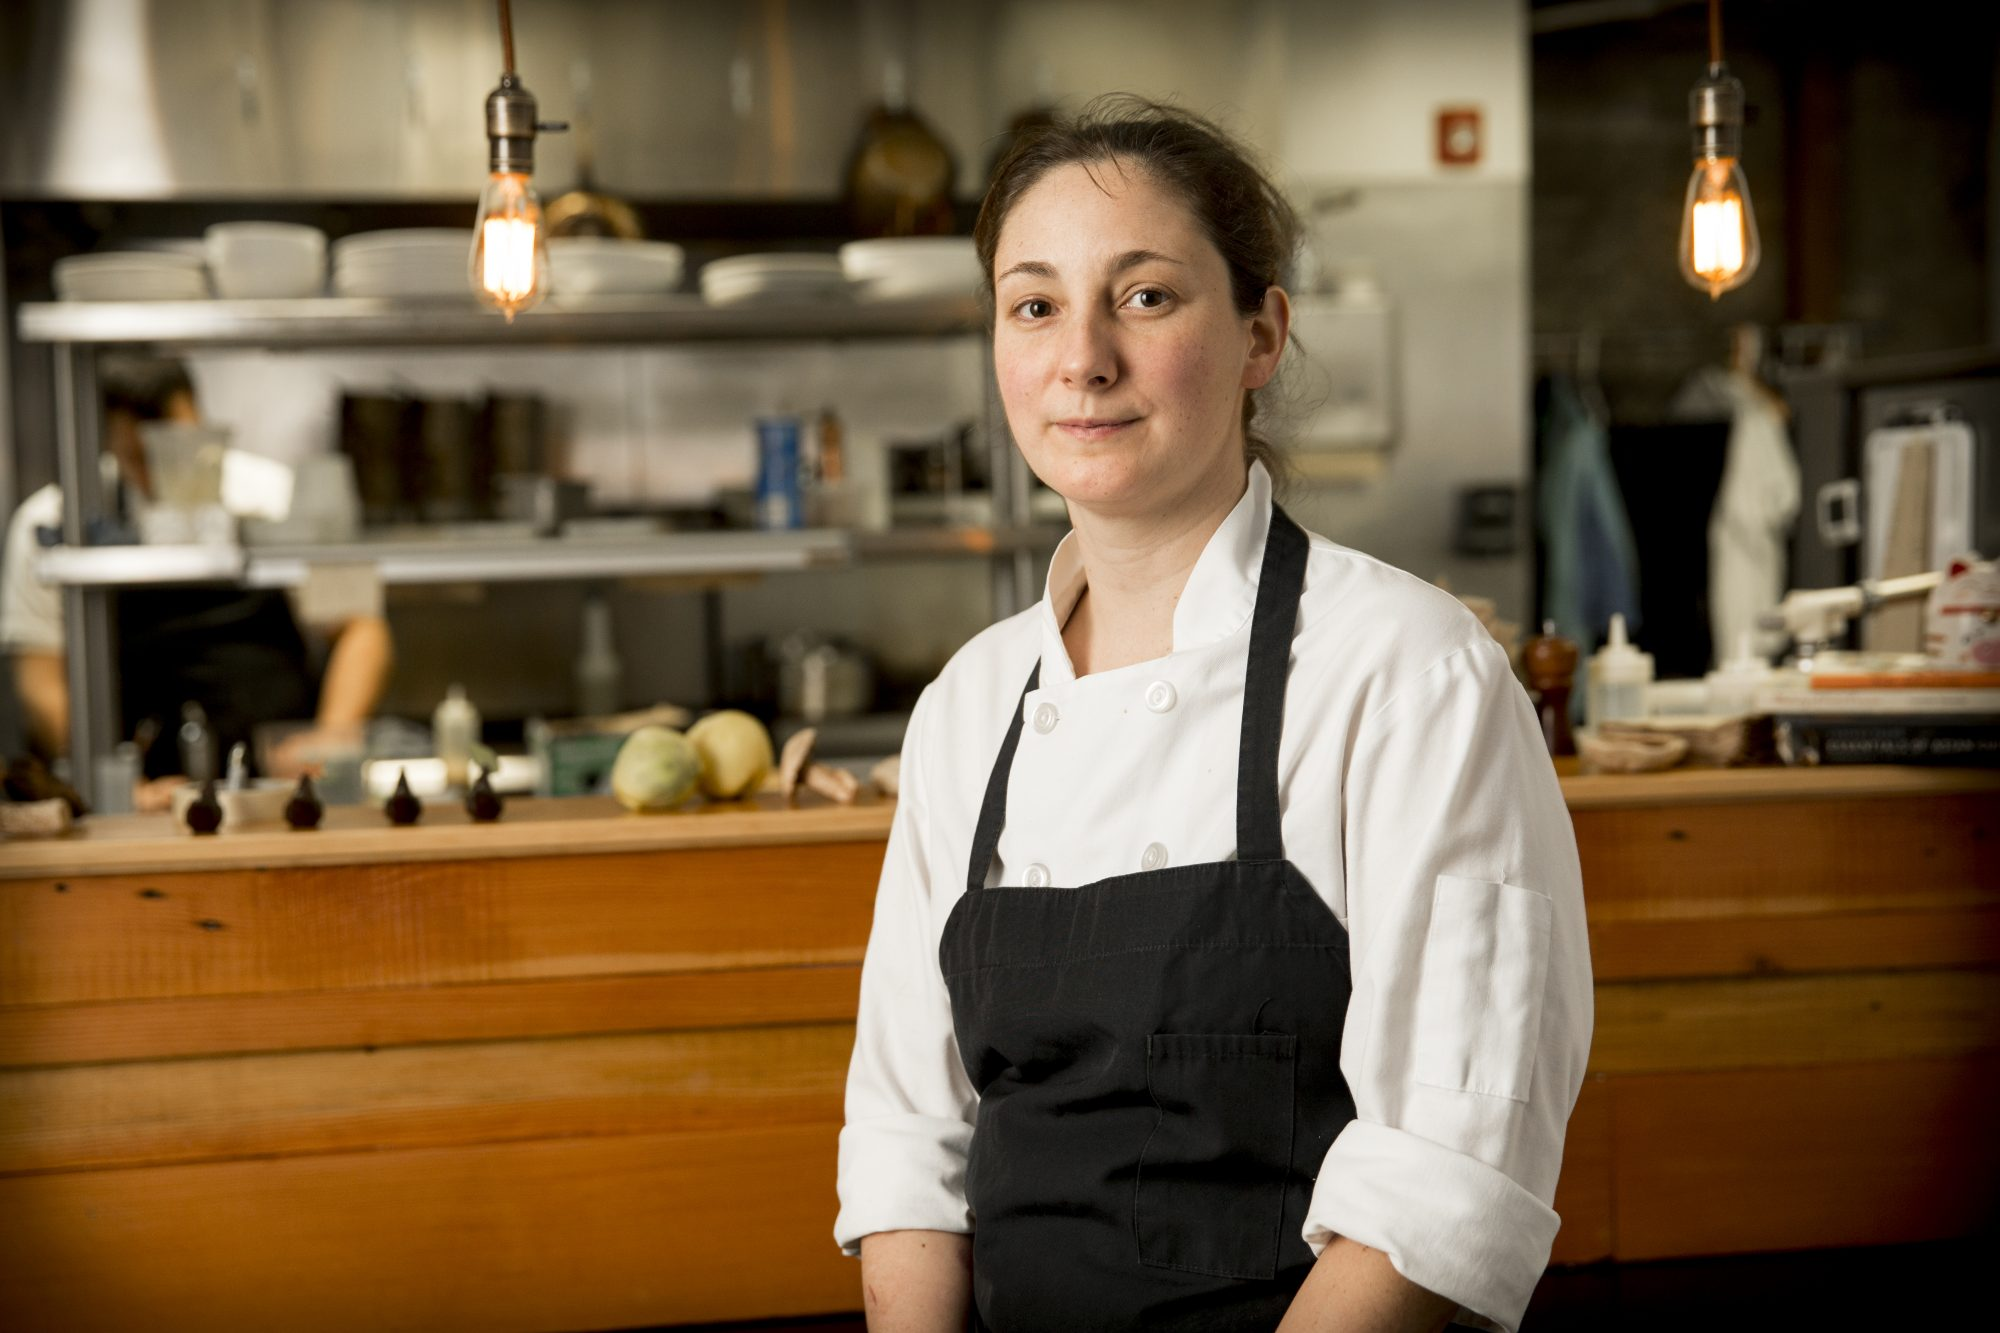 Sarah Pliner, owner and chef at Aviary